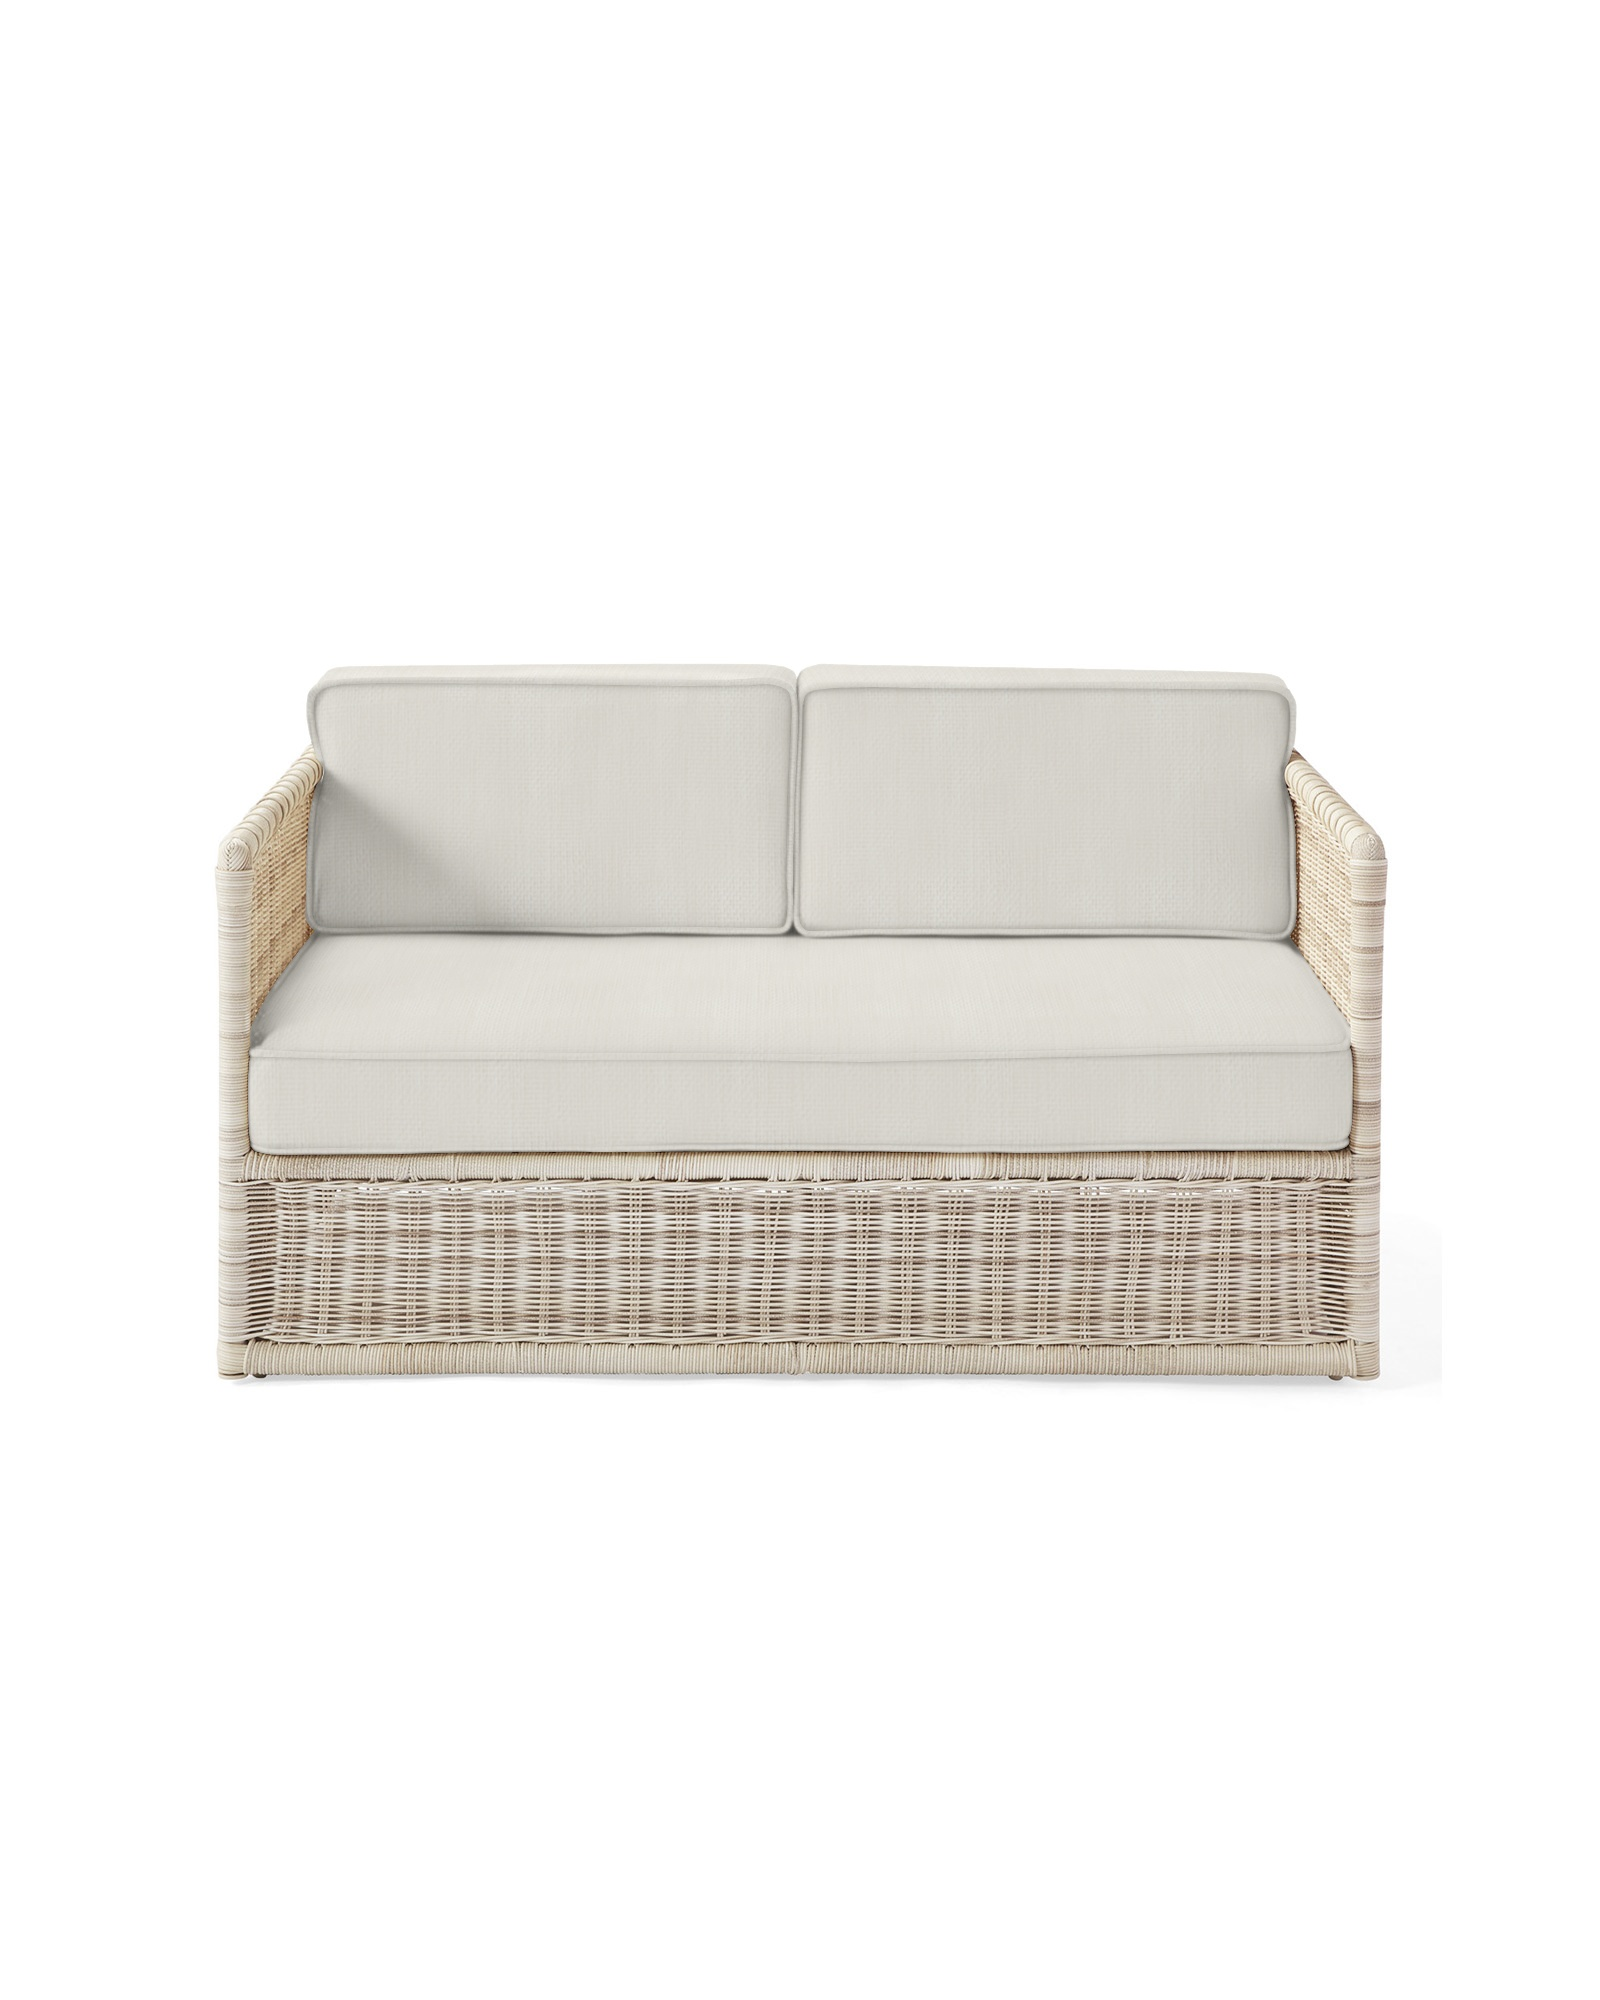 Cushion Cover for Pacifica Loveseat, Perennials Basketweave Chalk